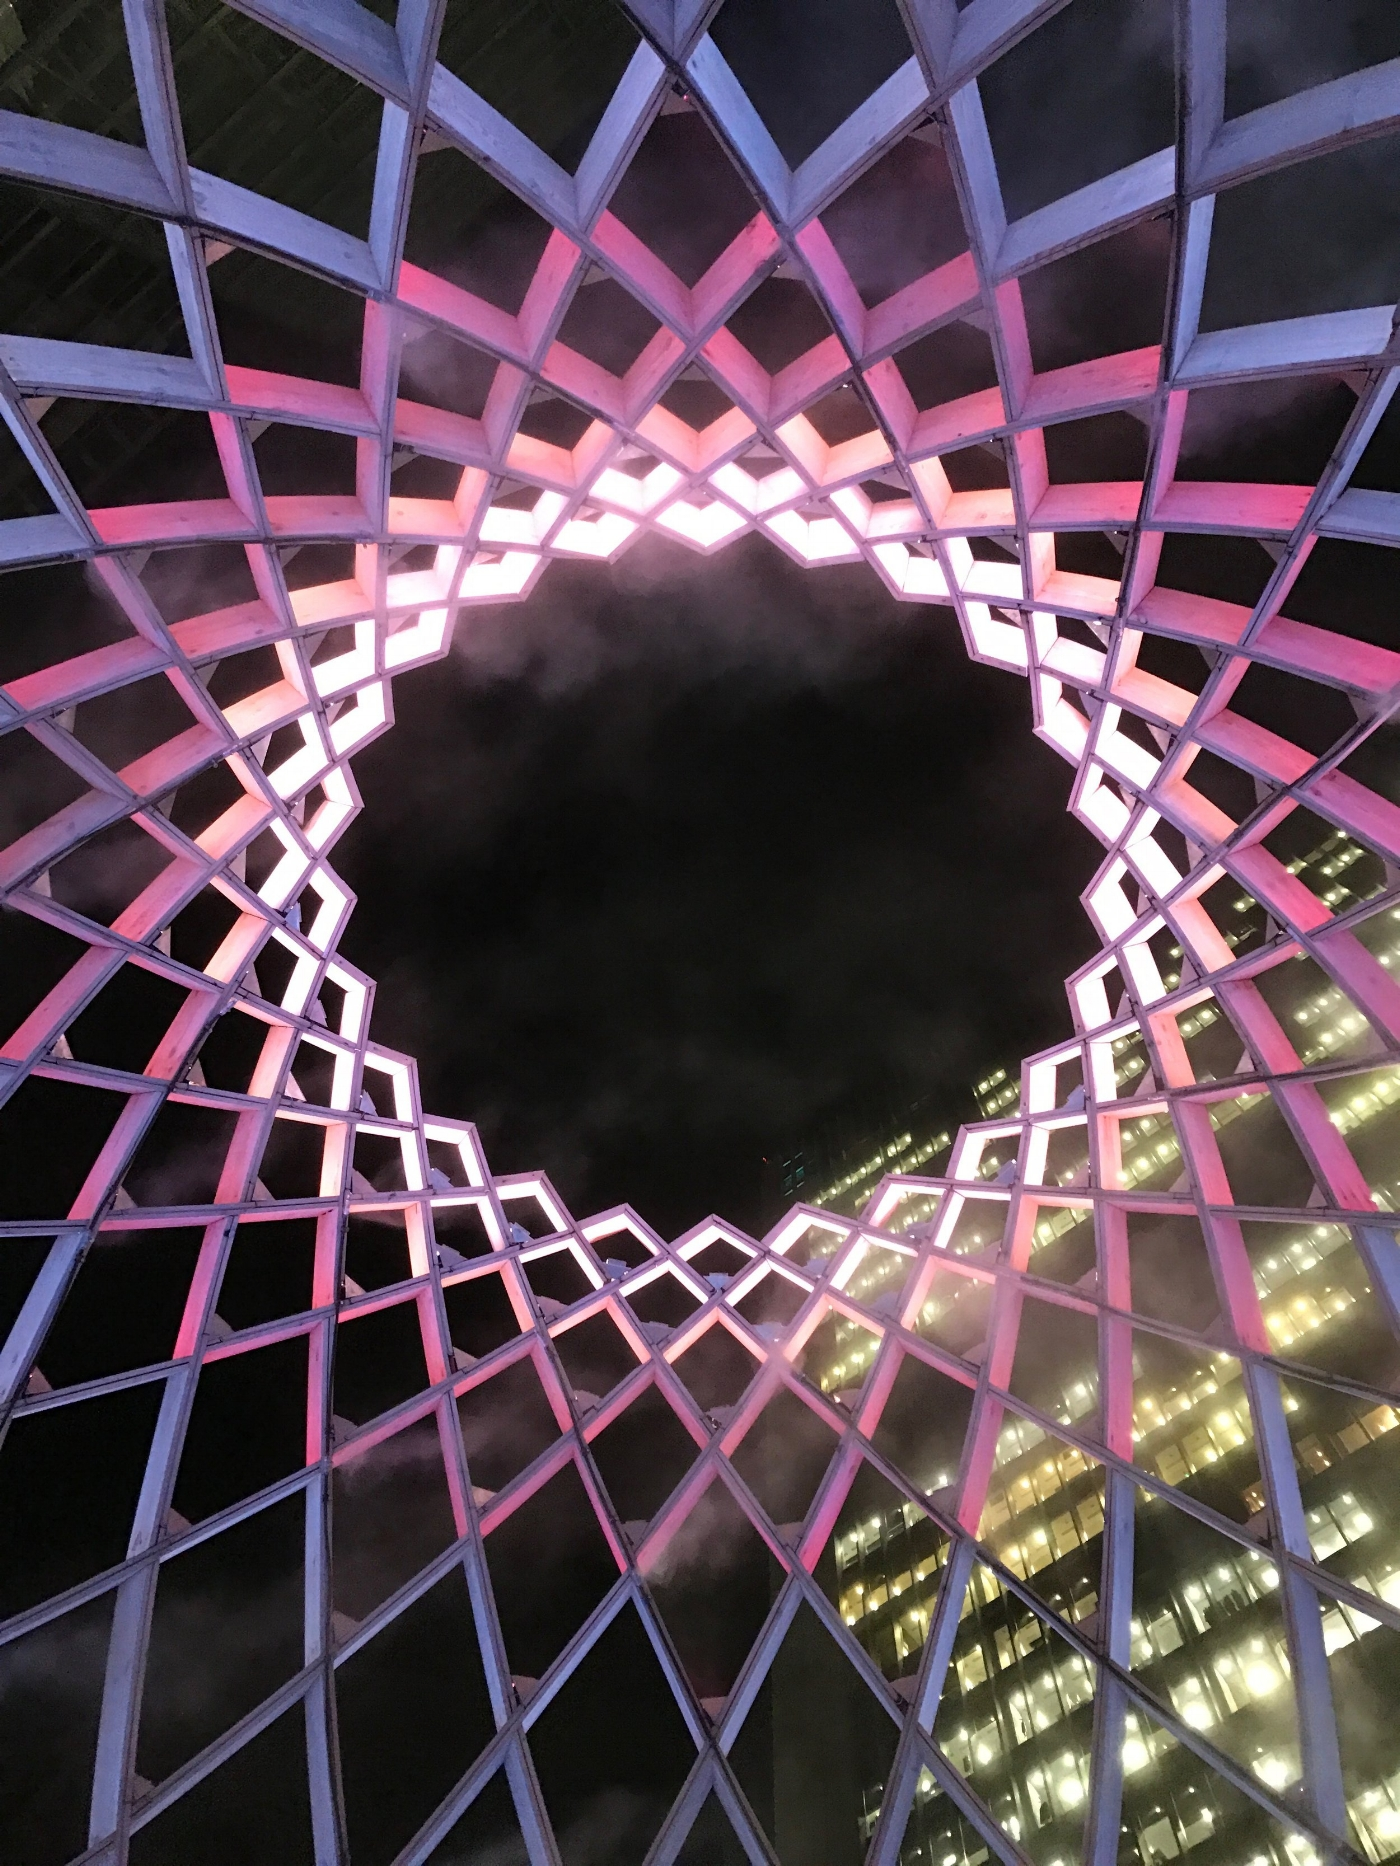 Looking up inside the Ovo light installation at Winter Lights, Canary Wharf 2017